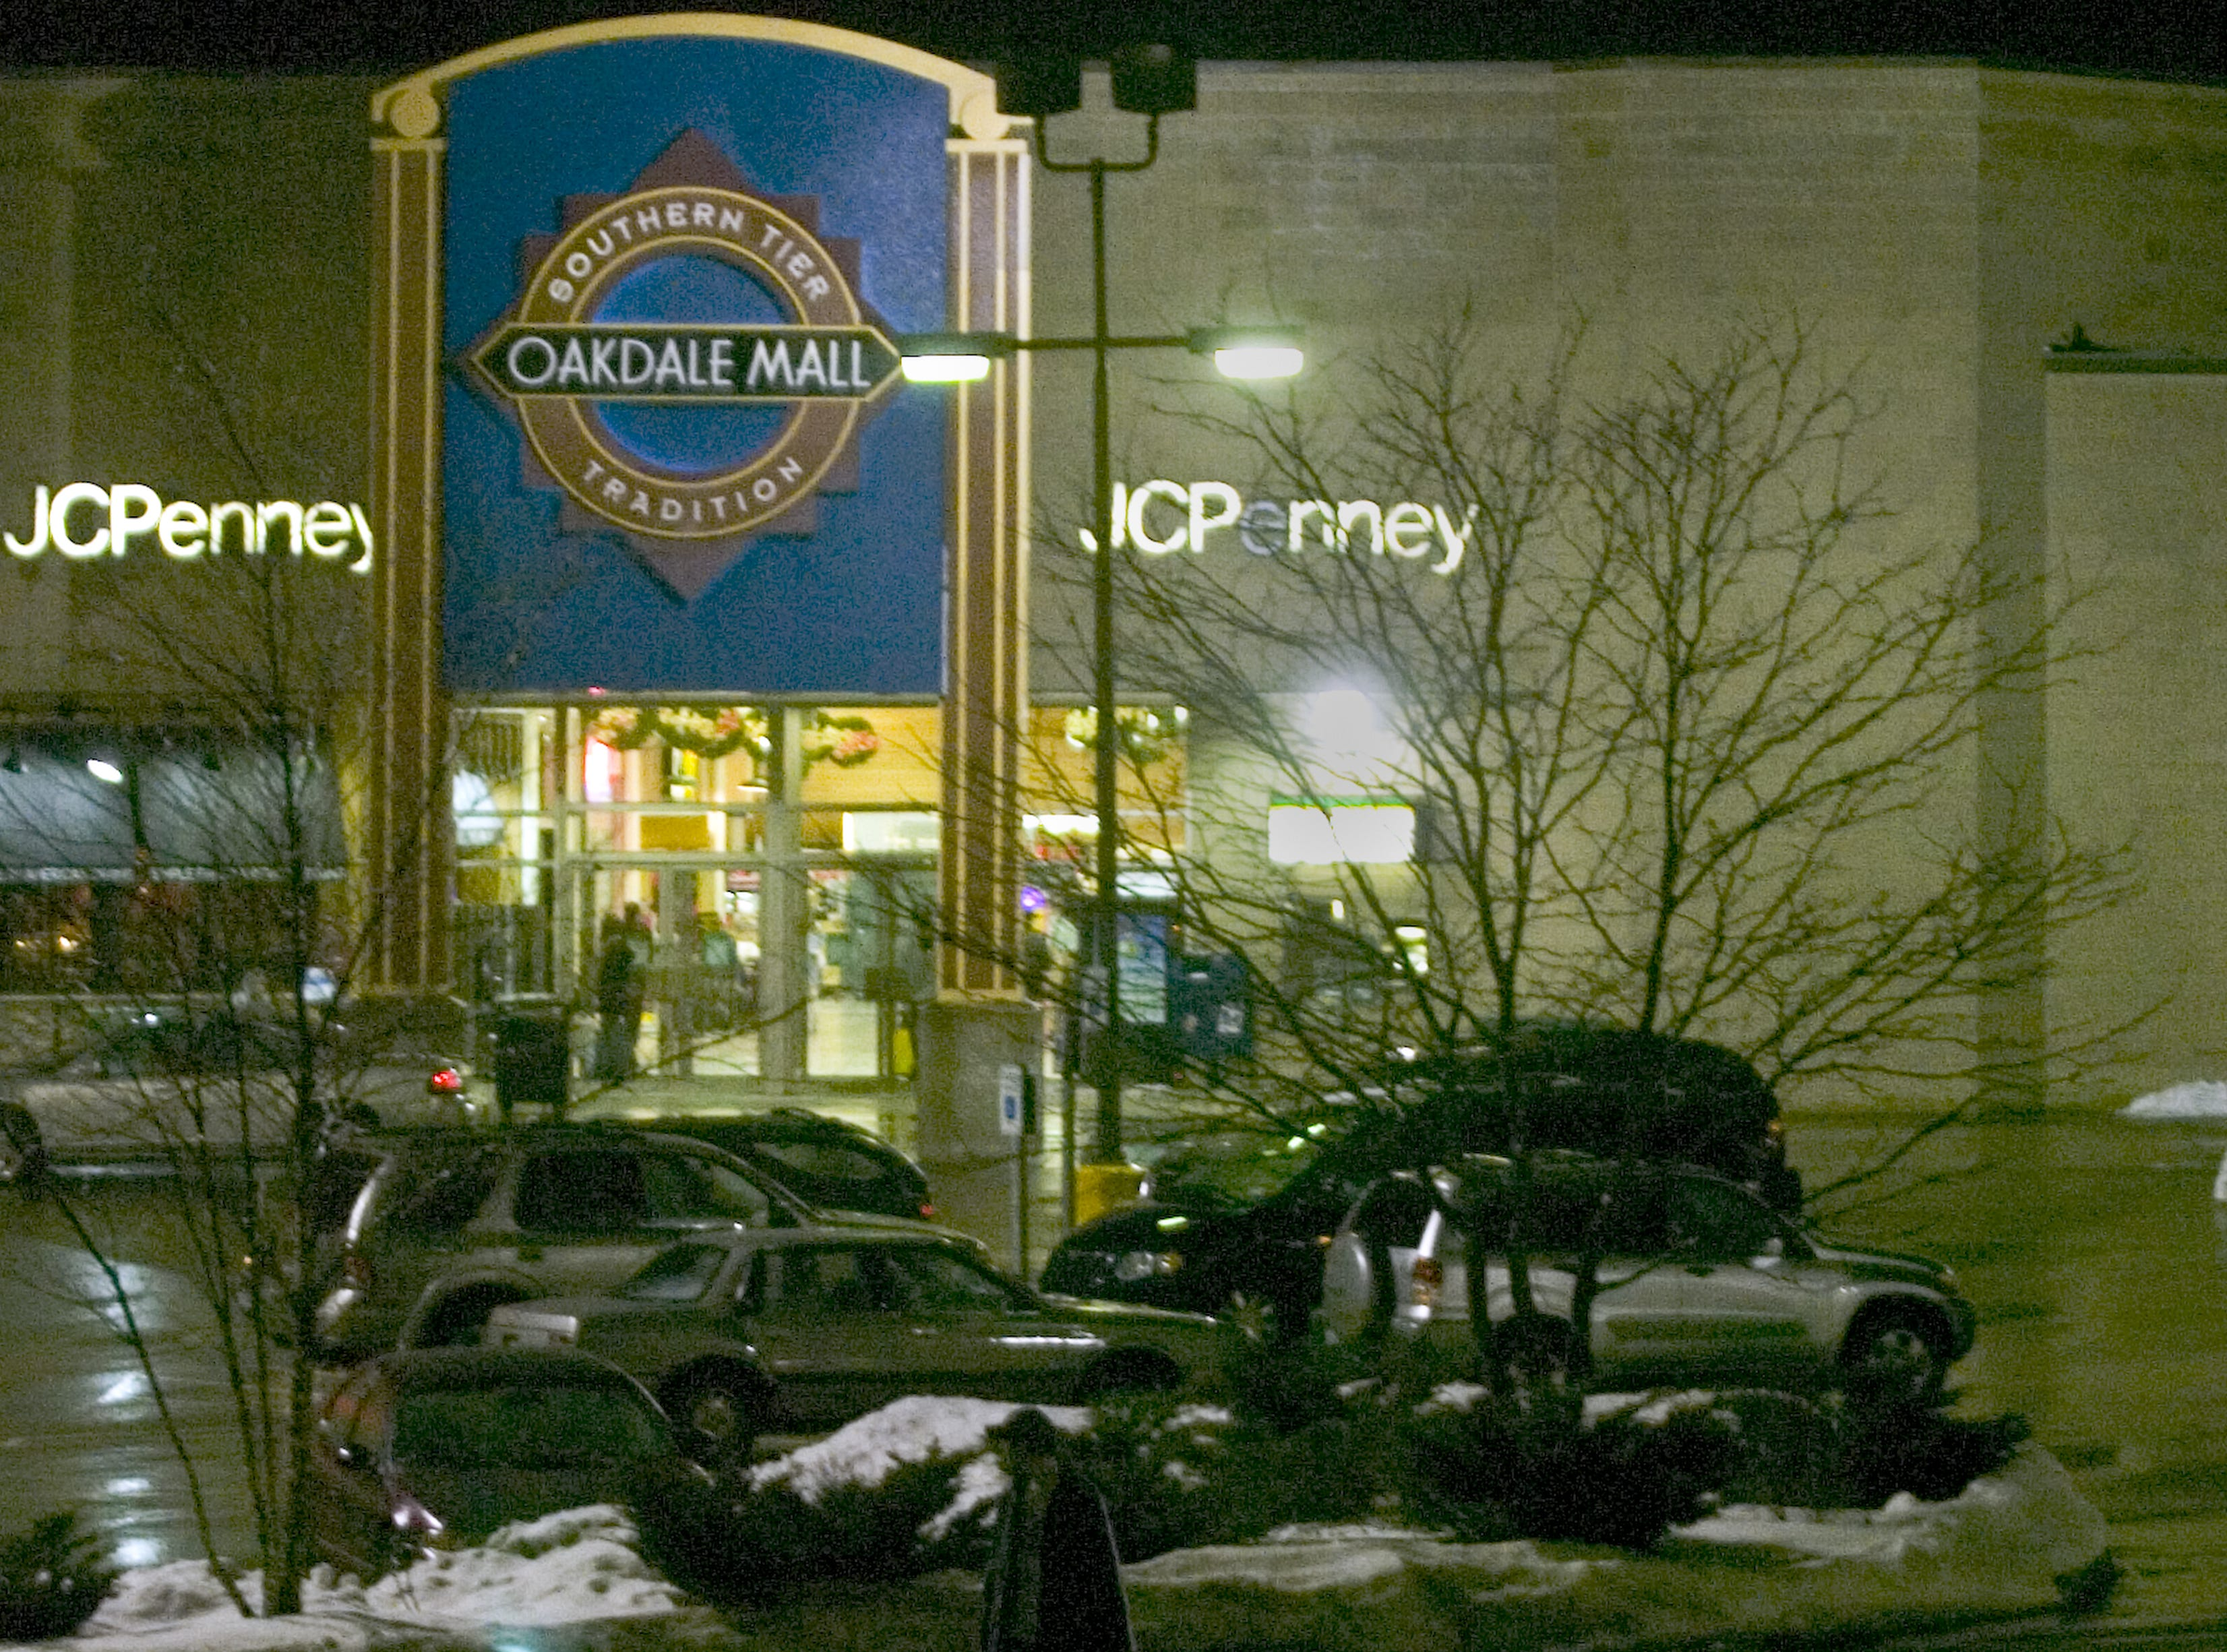 Sunday evenings icy weather kept holiday shoppers home as the parking lot at the Oakdale Mall in Johnson City was not crowed at all on Dec. 9, 2007.